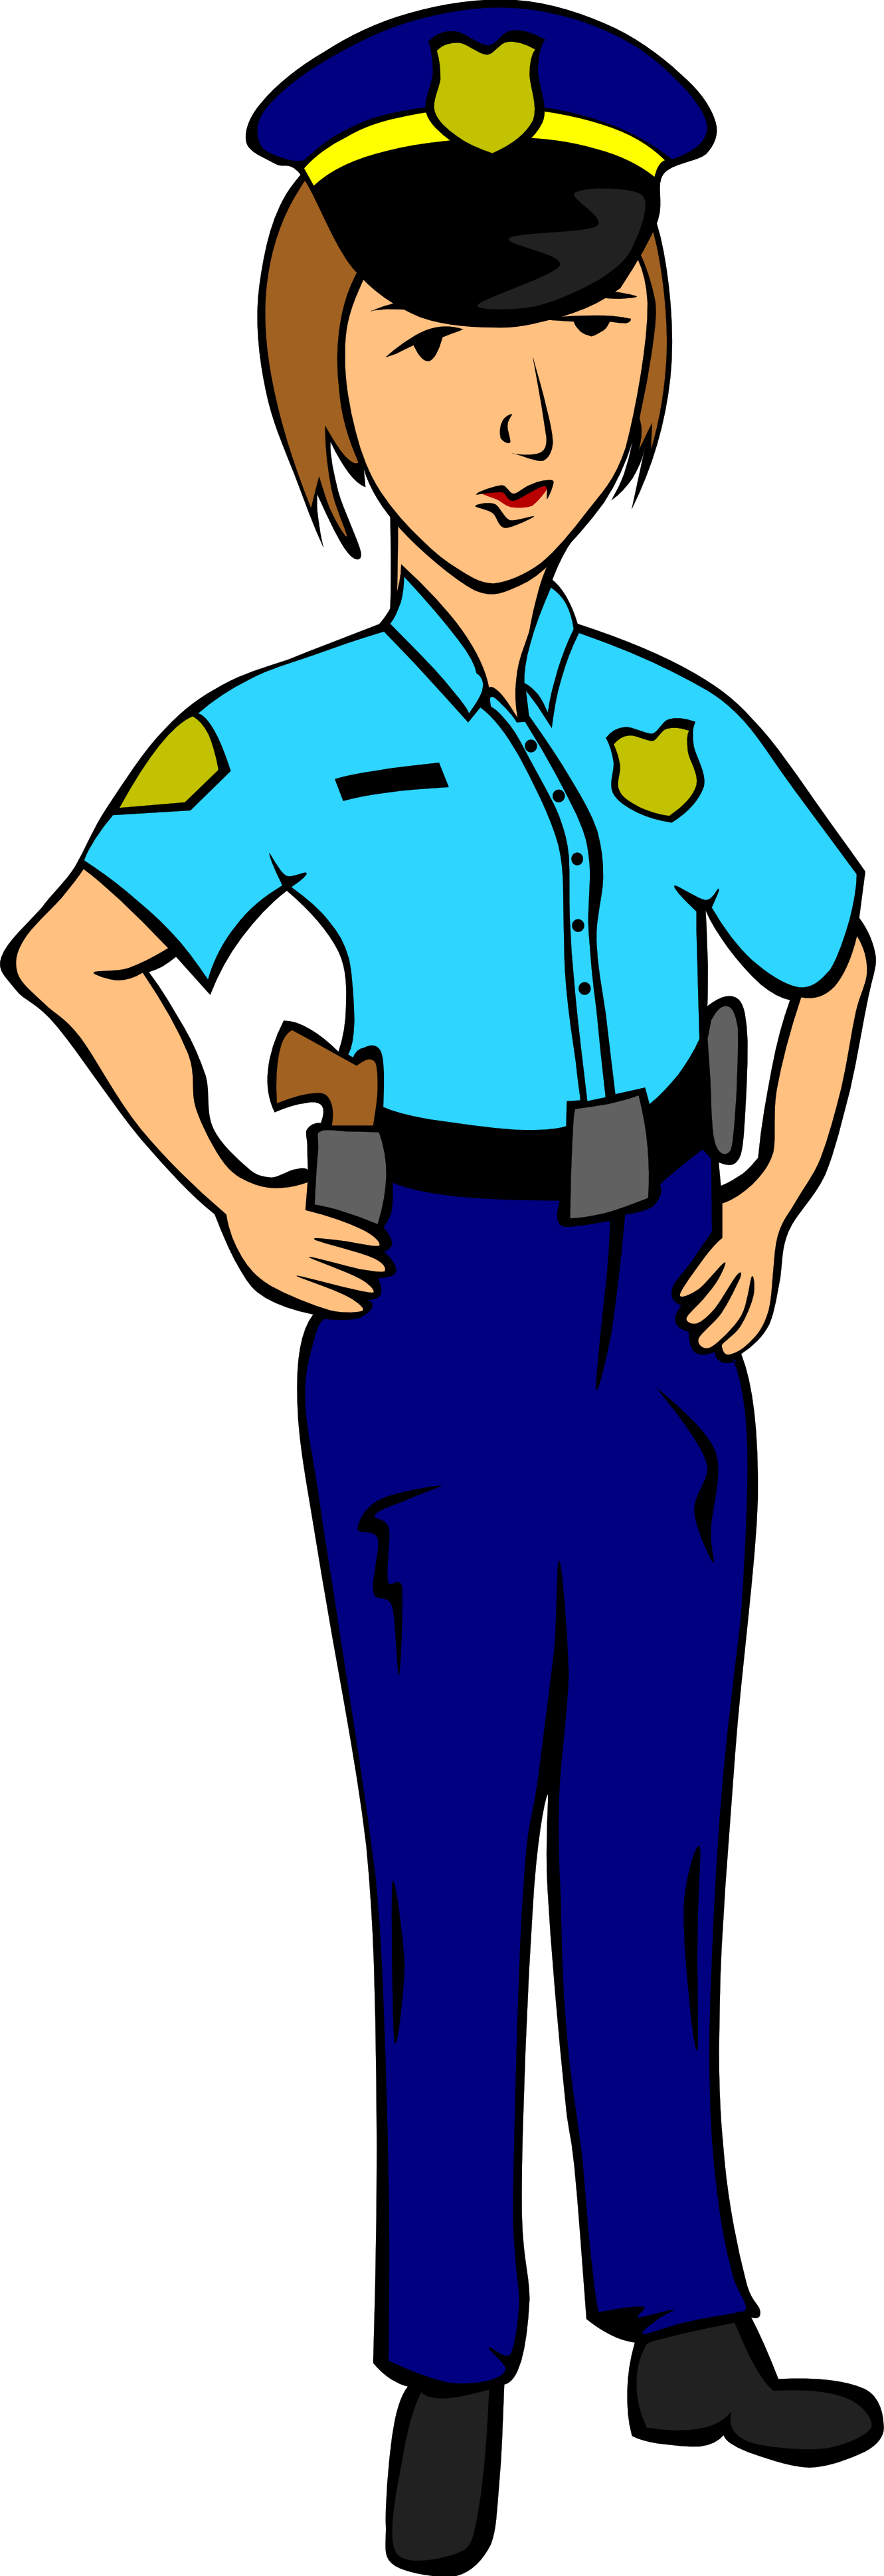 1331x3878 Image Of Police Images Clip Art